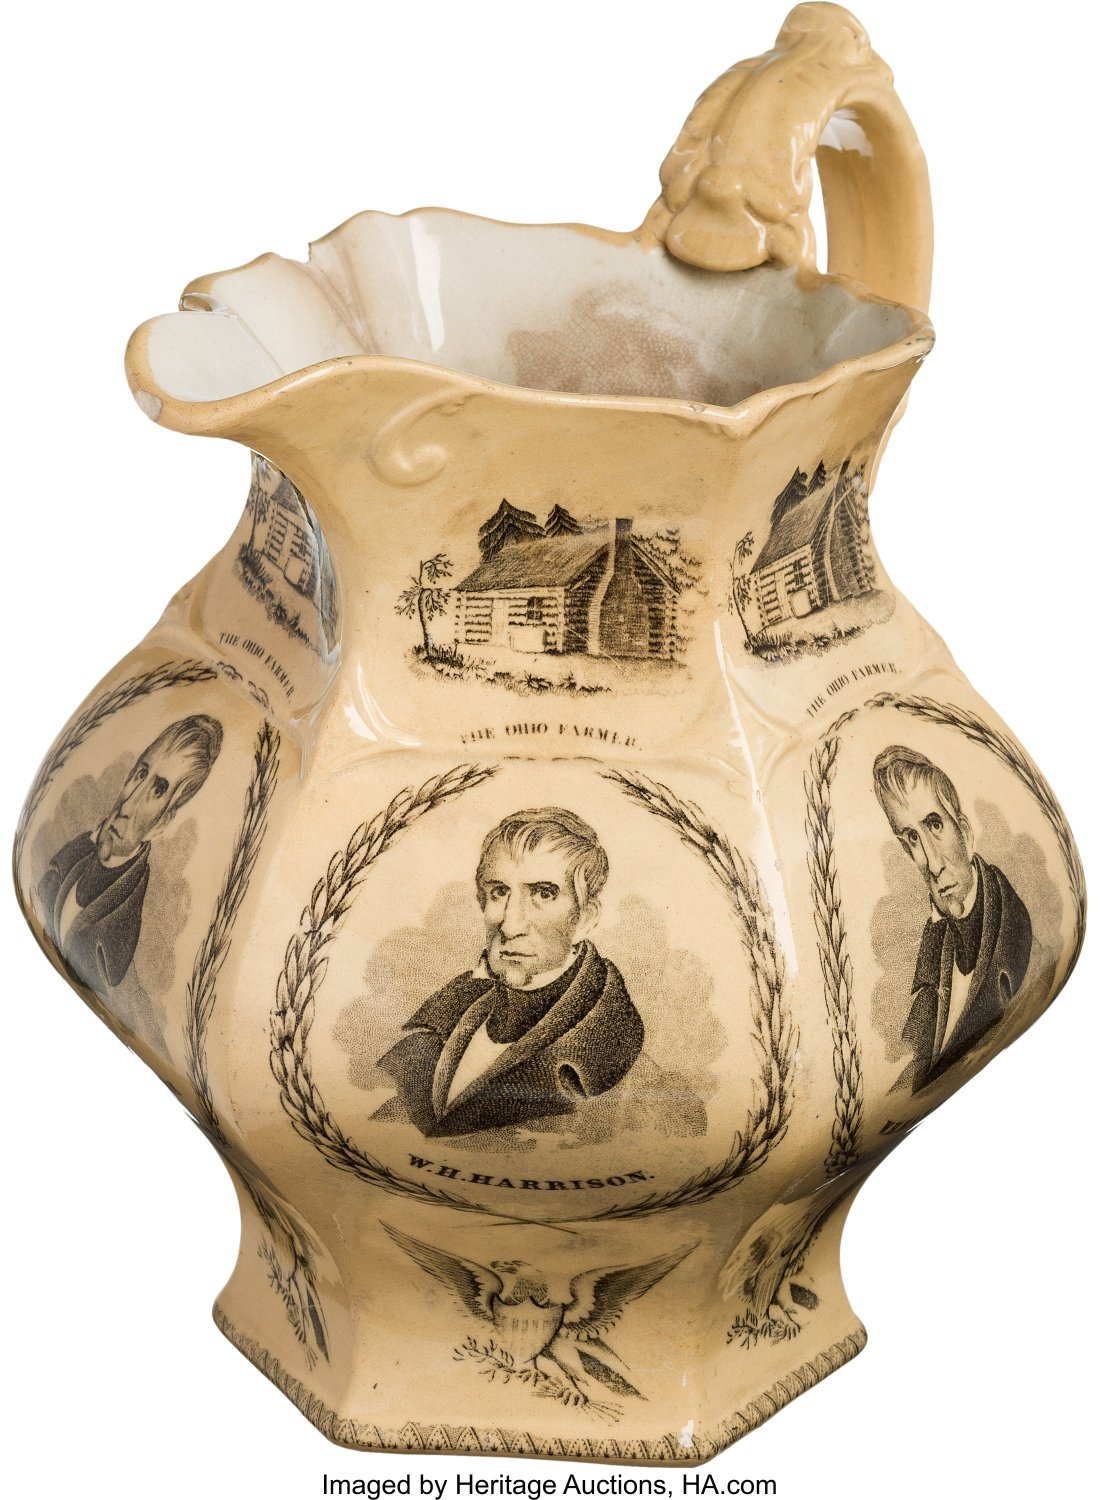 A large (almost a foot tall) ceramic pitcher touting Whig candidate William Henry Harrison's 1840 campaign for president.